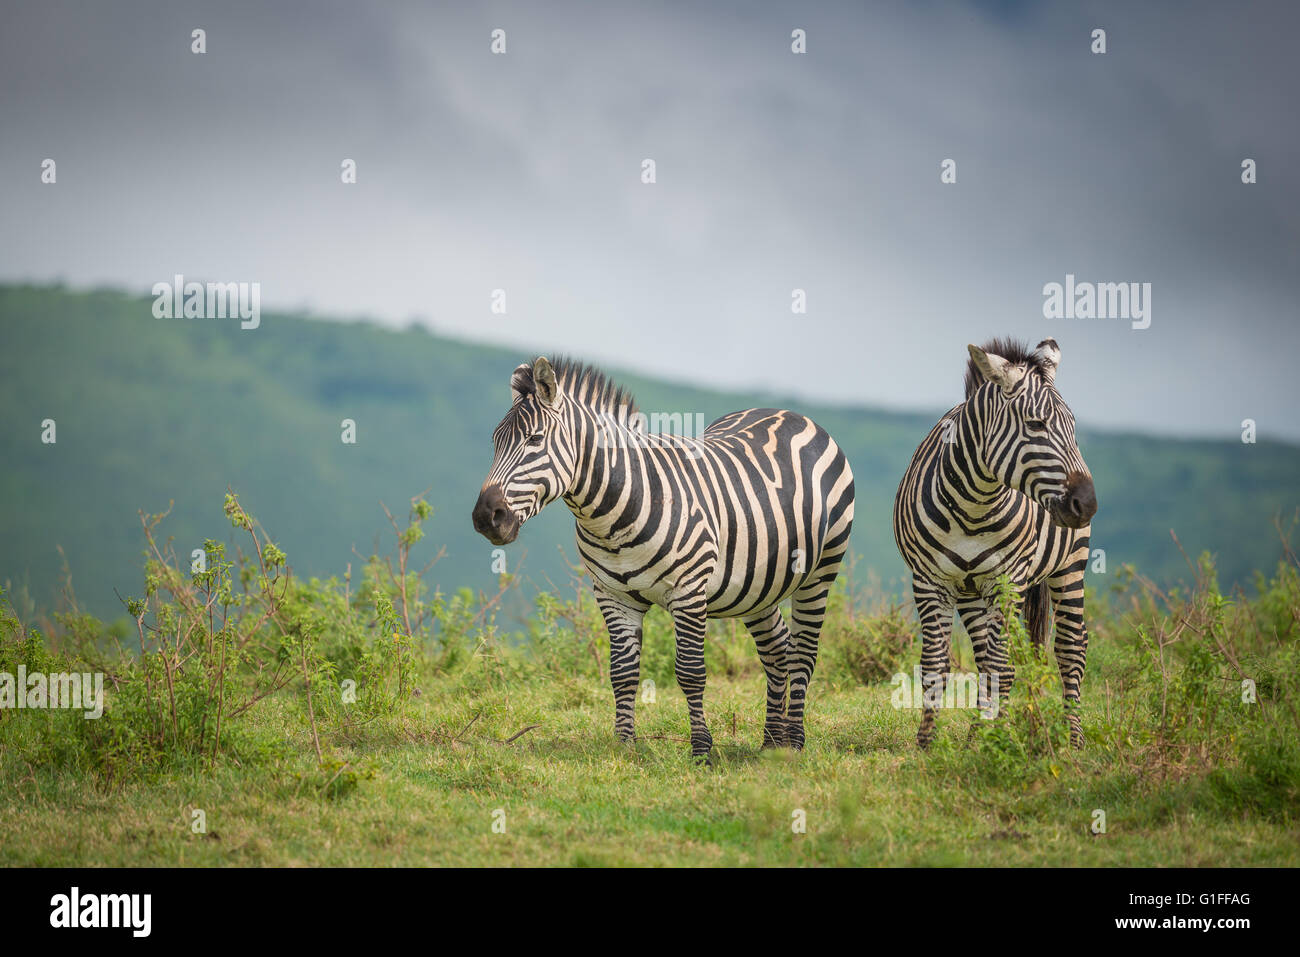 Two wild Zebra standing on the African grasslands found within the Ngorongoro Crater in Tanzania, East Africa - Stock Image